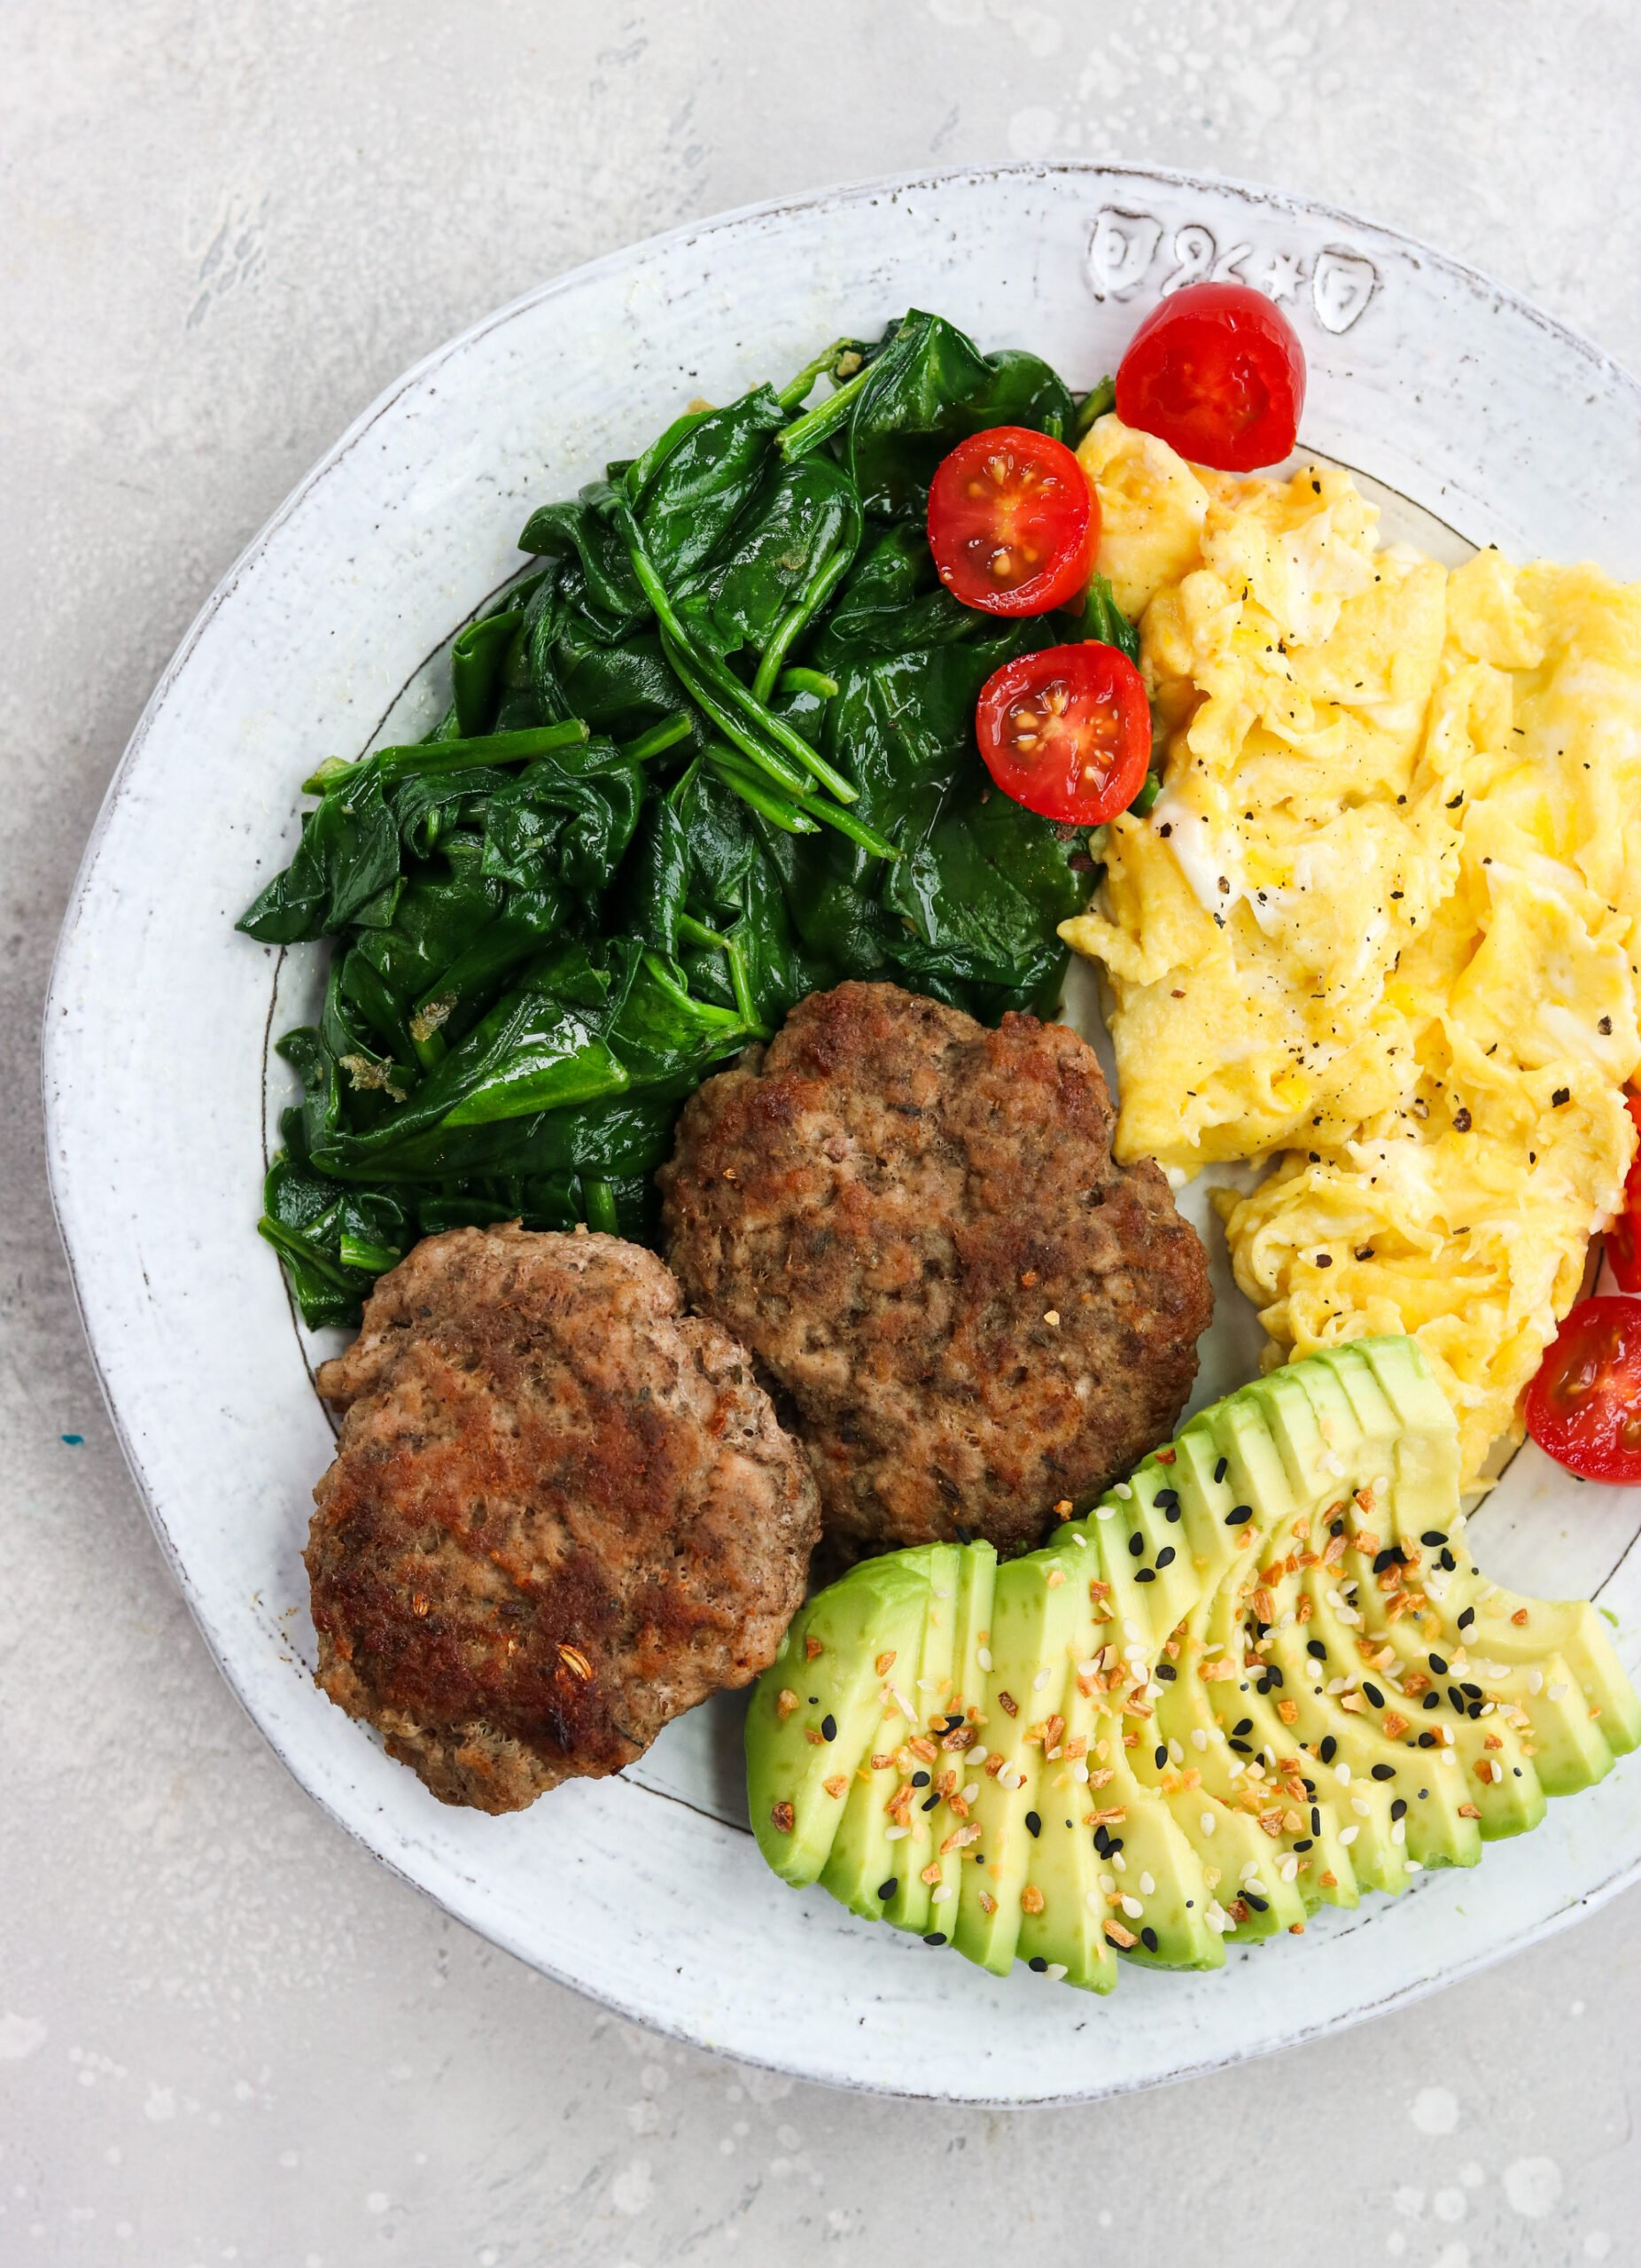 Homemade breakfast sausage with scrambled eggs and vegetables